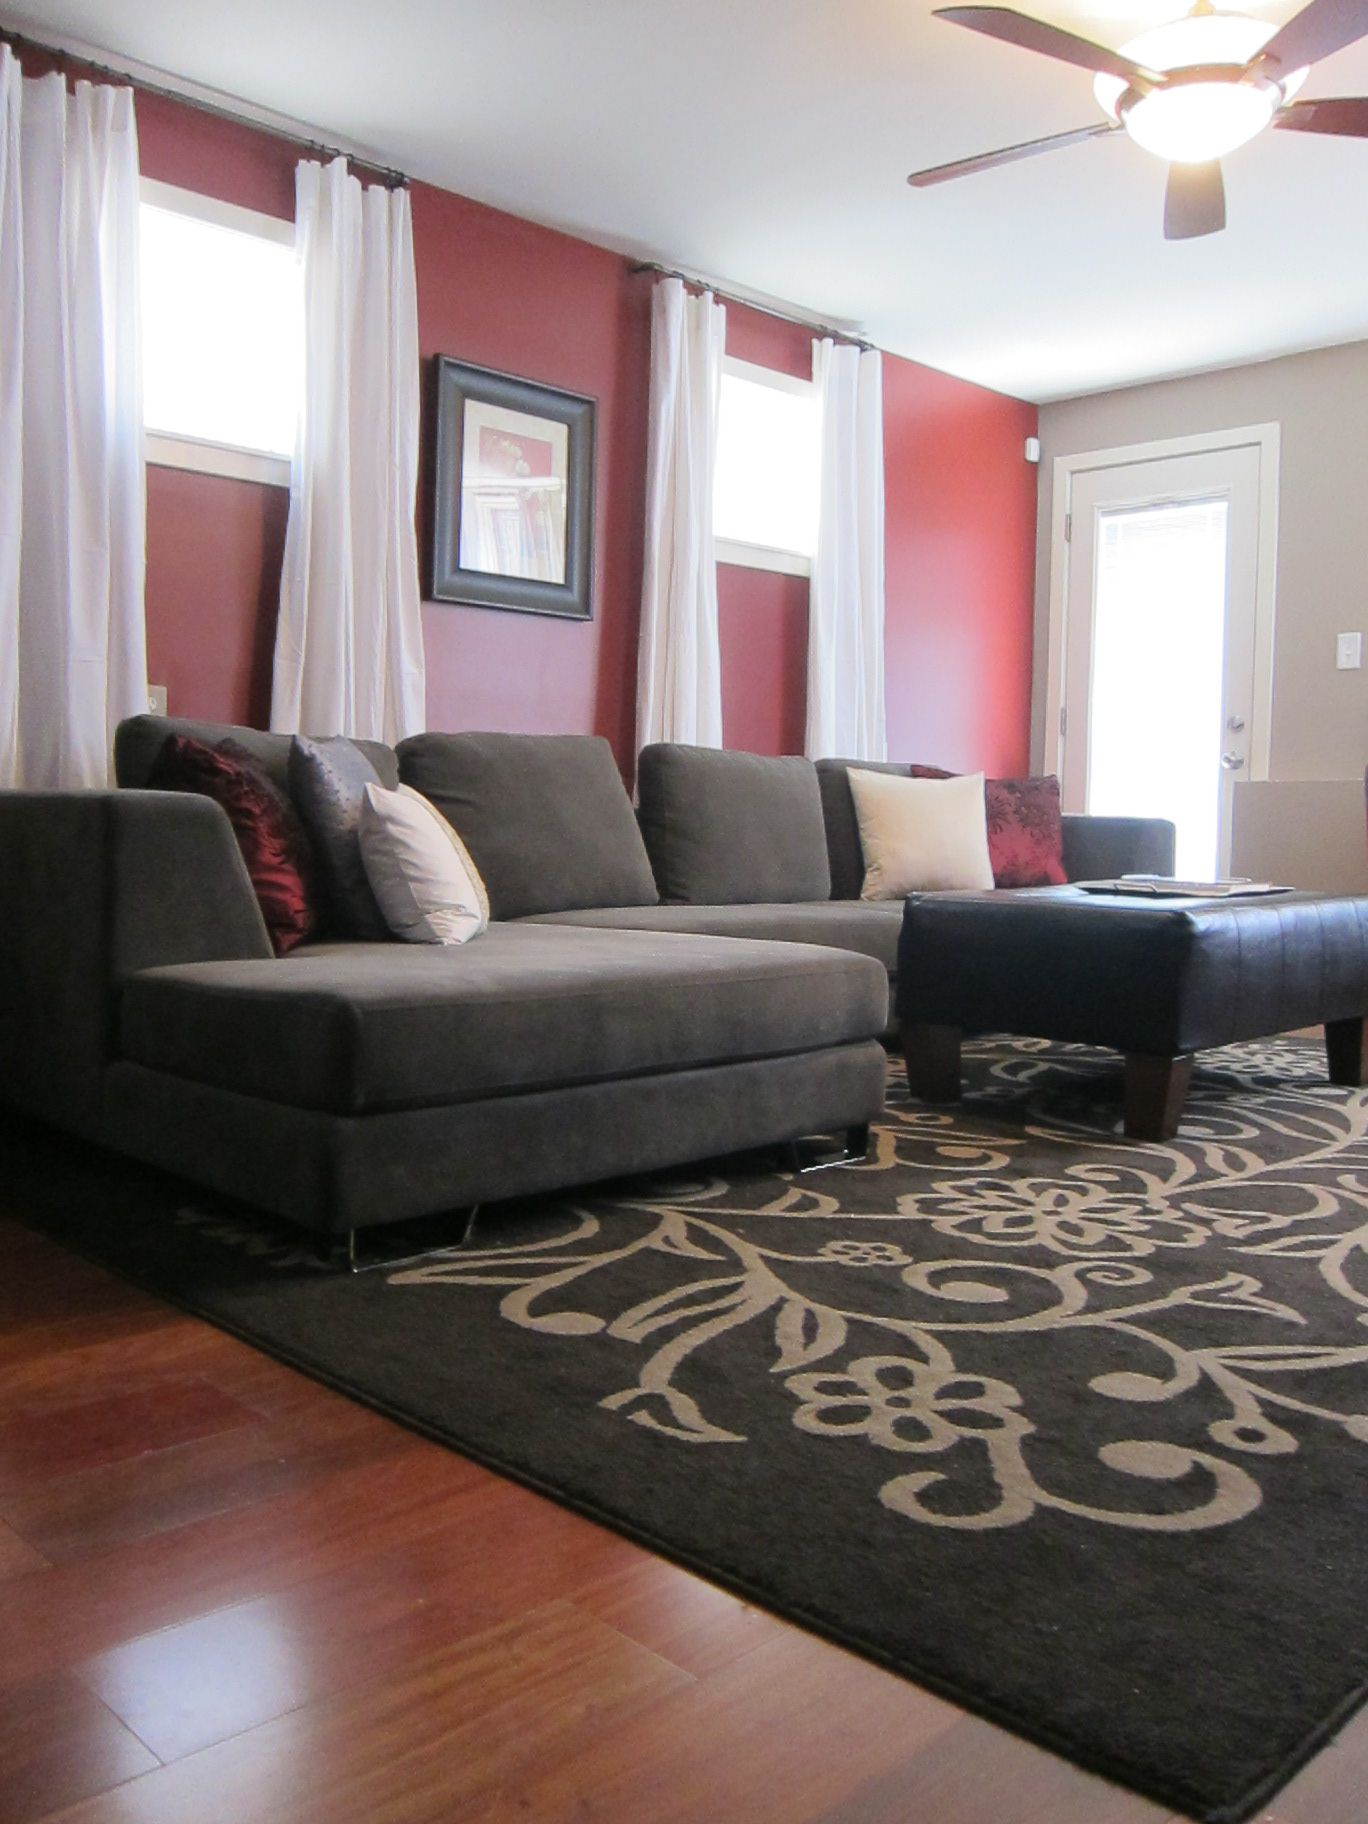 A Philadelphia Tv Host S Home Complete With A Red Accent Wall Busybee Design Projects